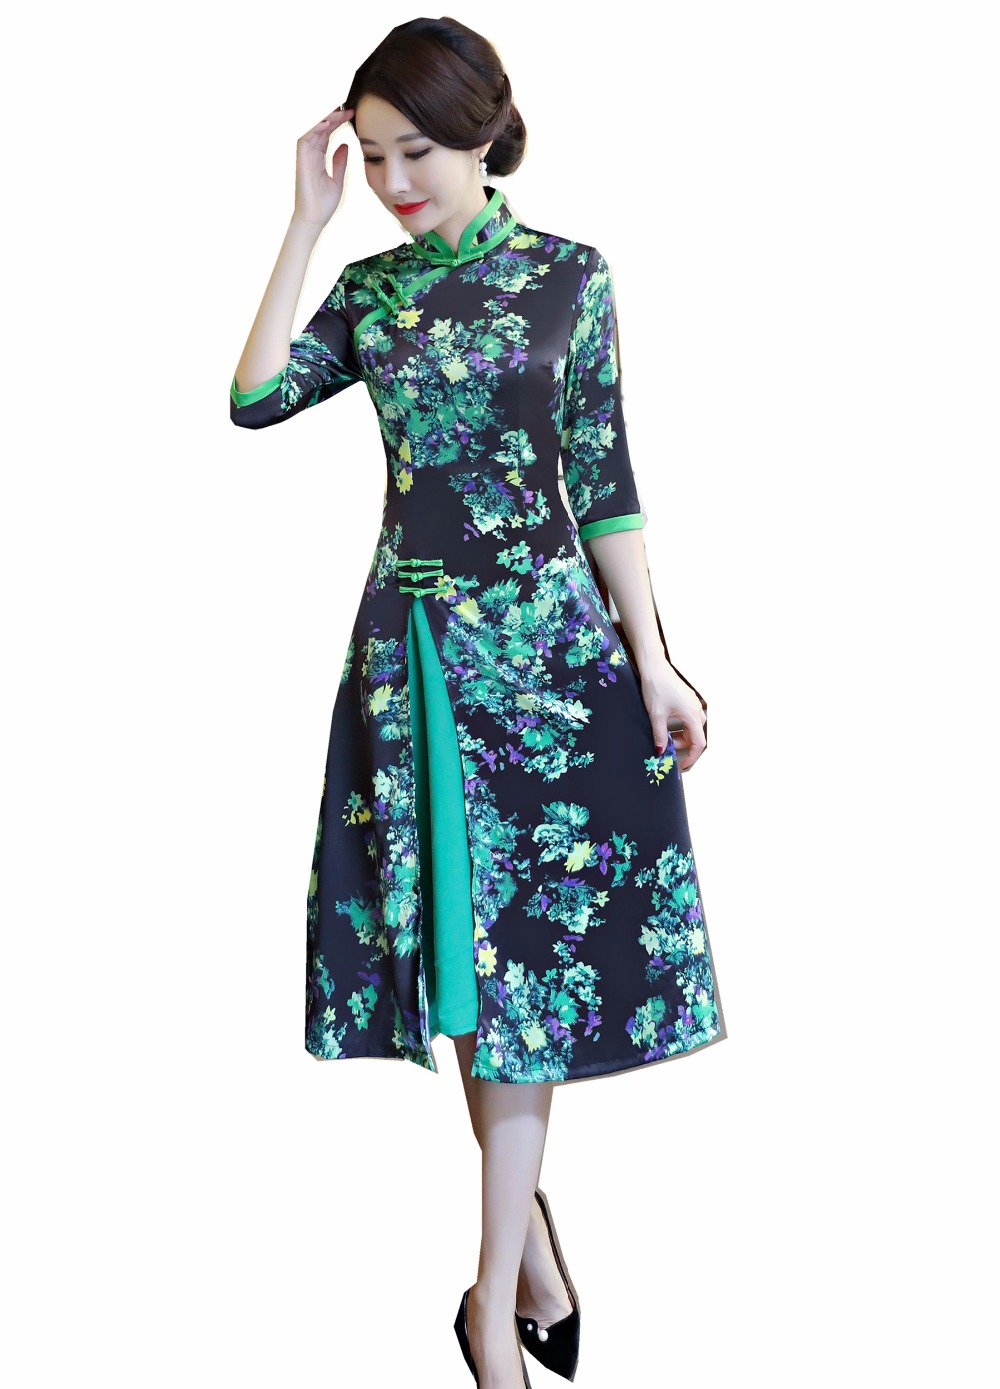 Vietnamese clothing stores